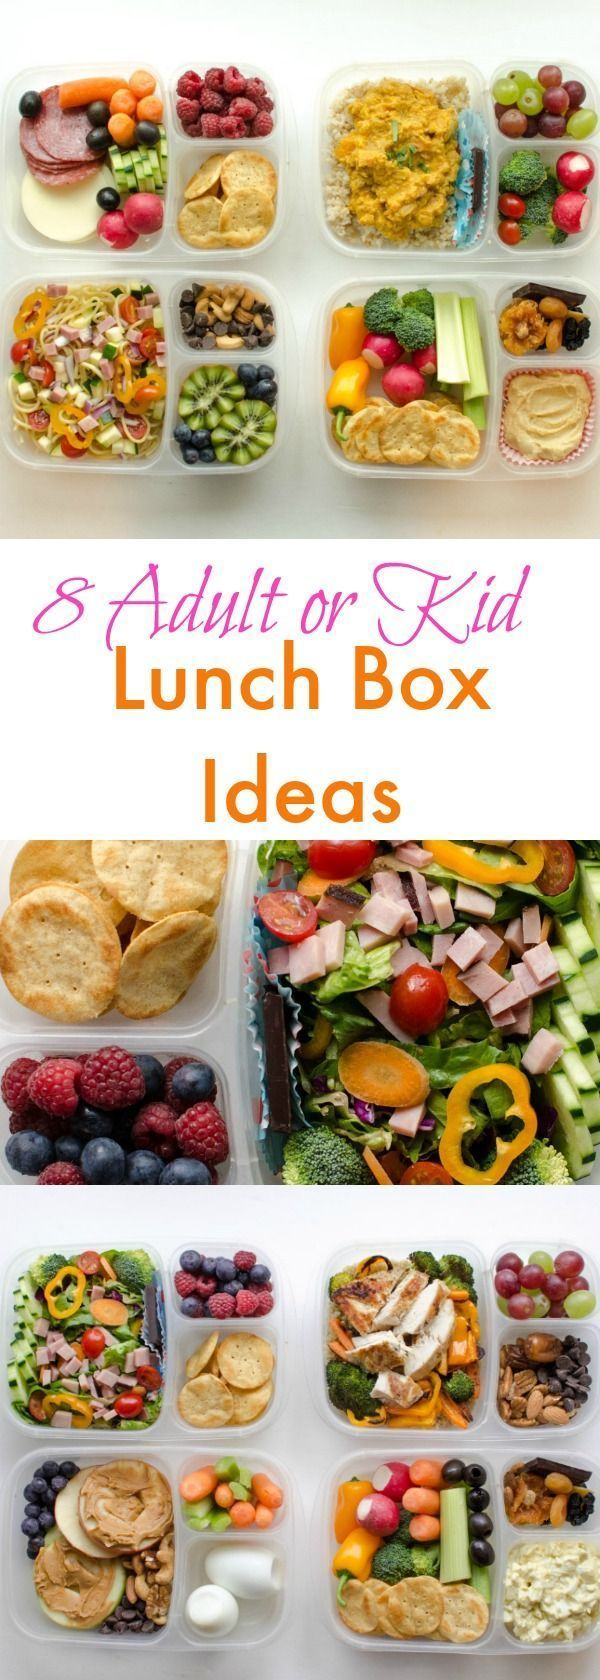 8 Wholesome Lunch-Box Ideas for Adults or Kids! packed in /easylunchboxes/ containers